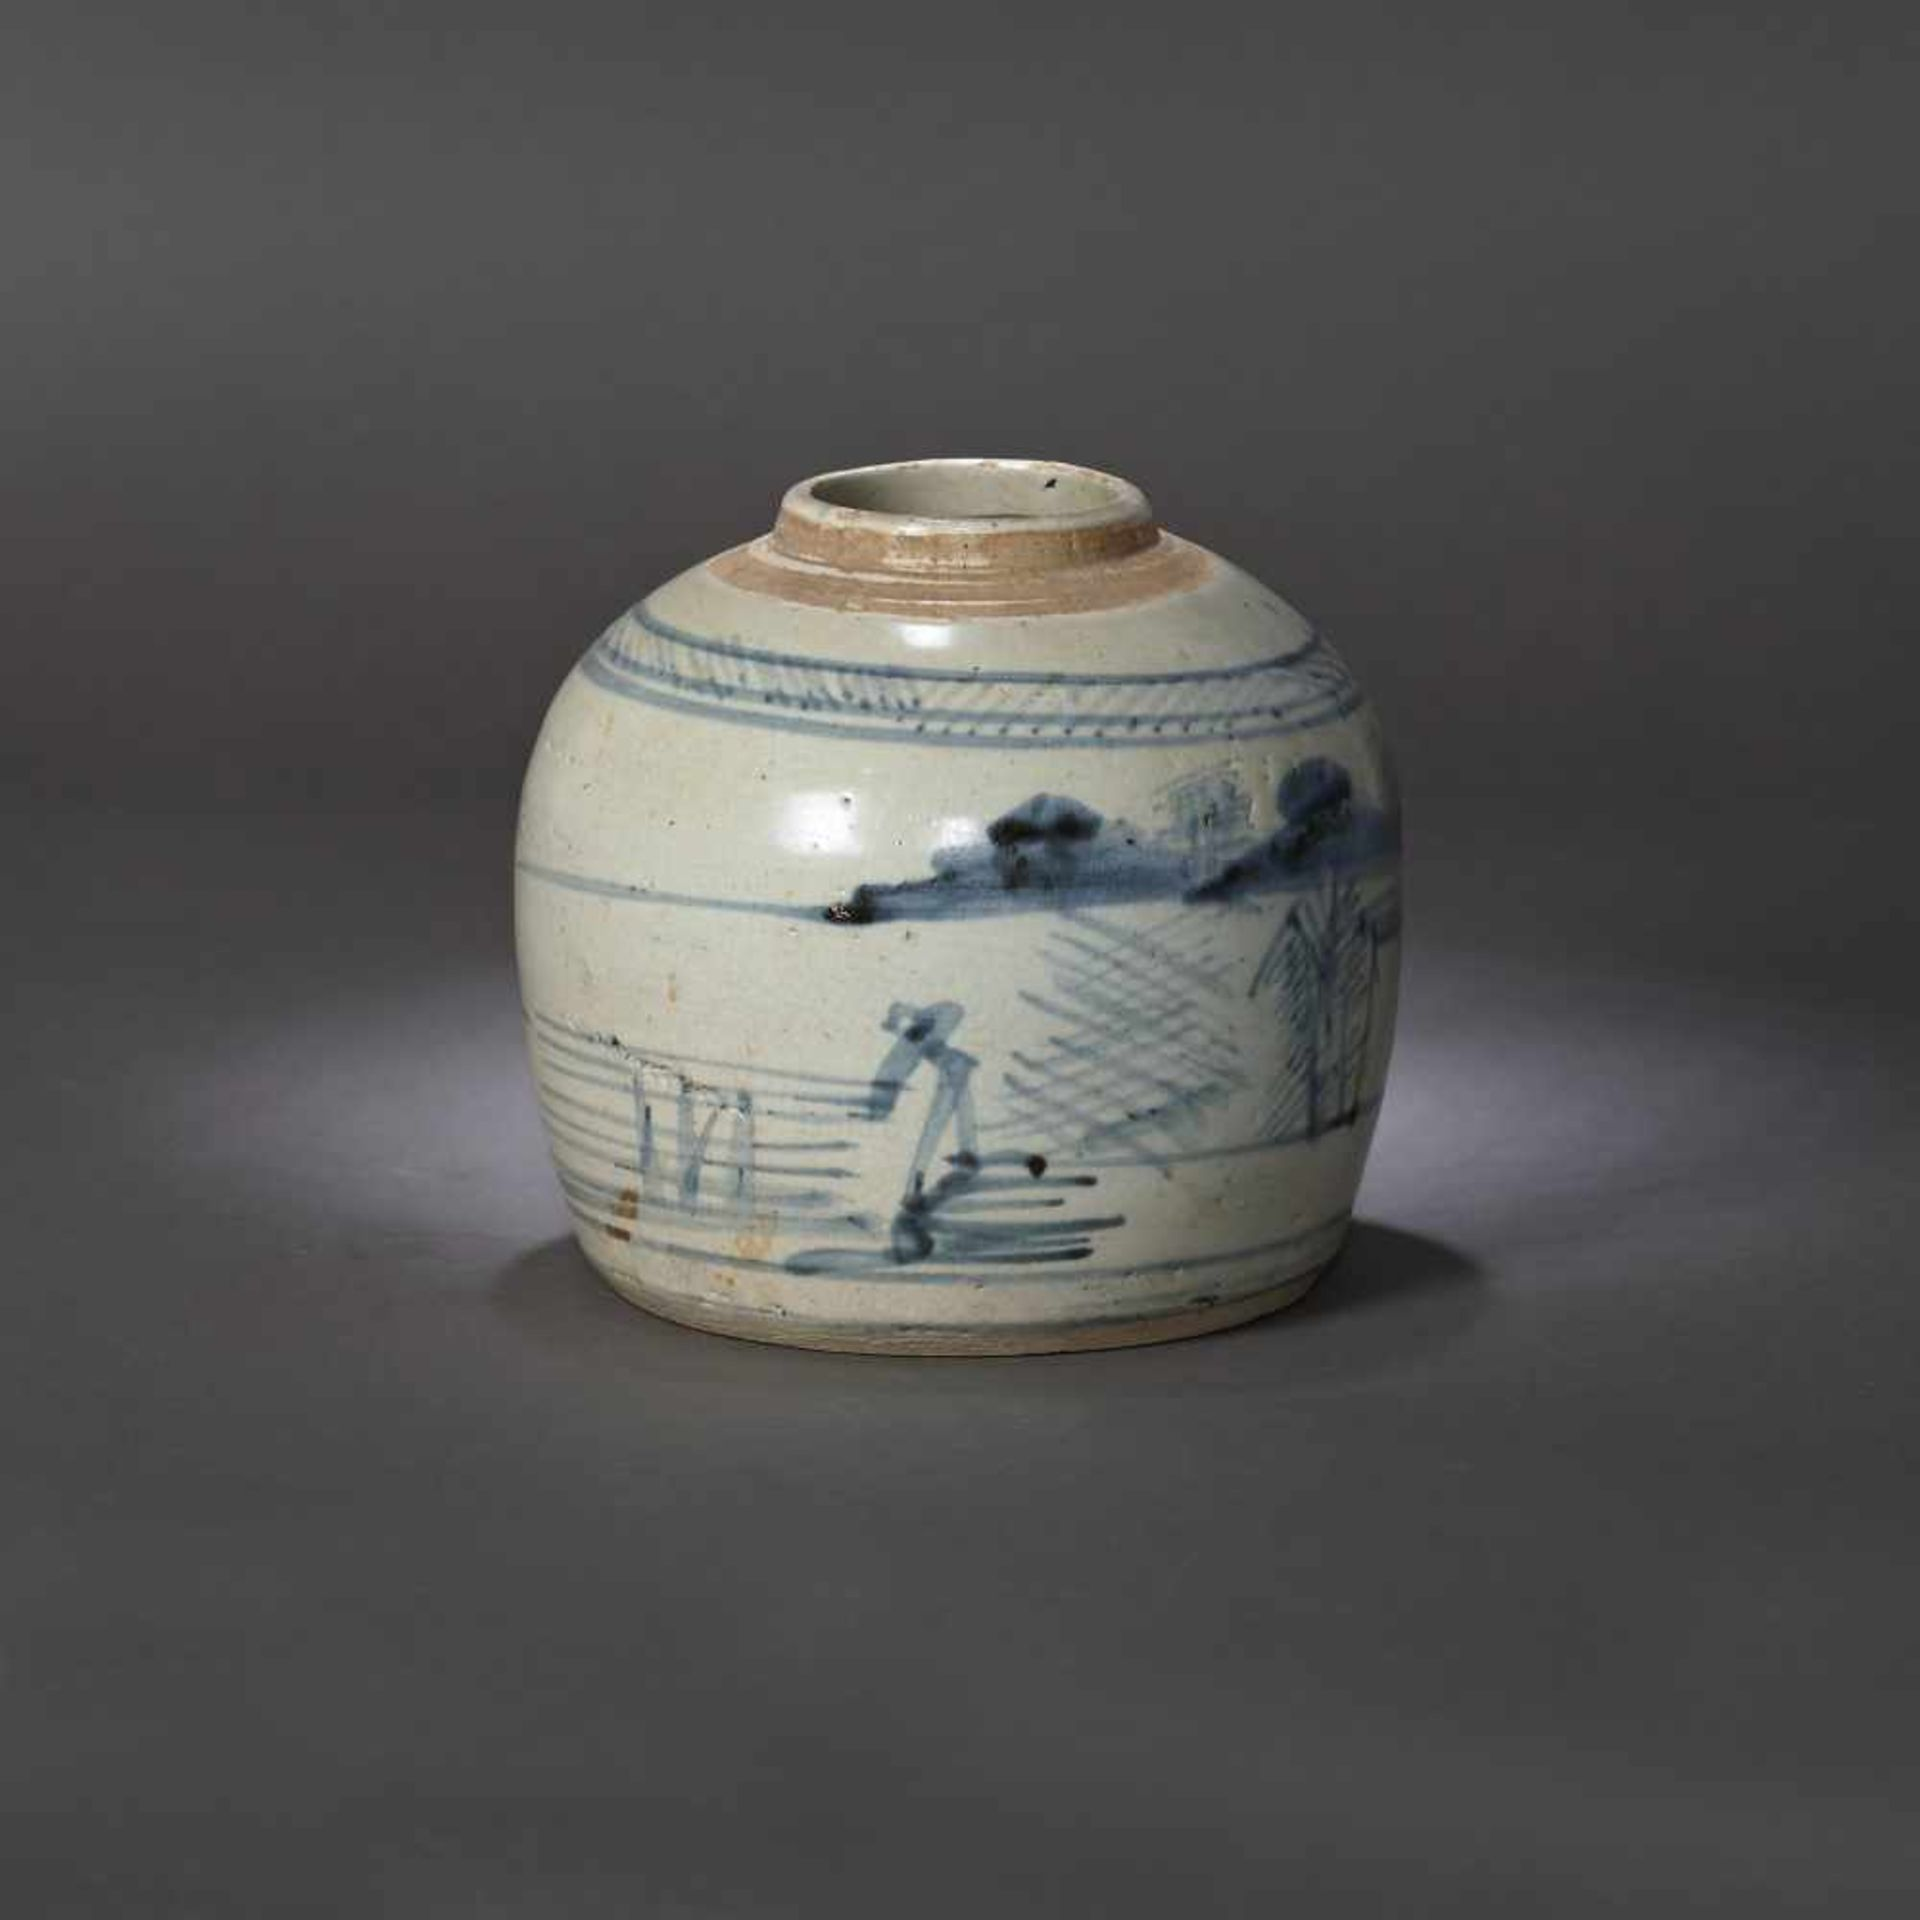 Ginger vessel, decorated with traditional landscapes, possibly 17th century - Bild 2 aus 5